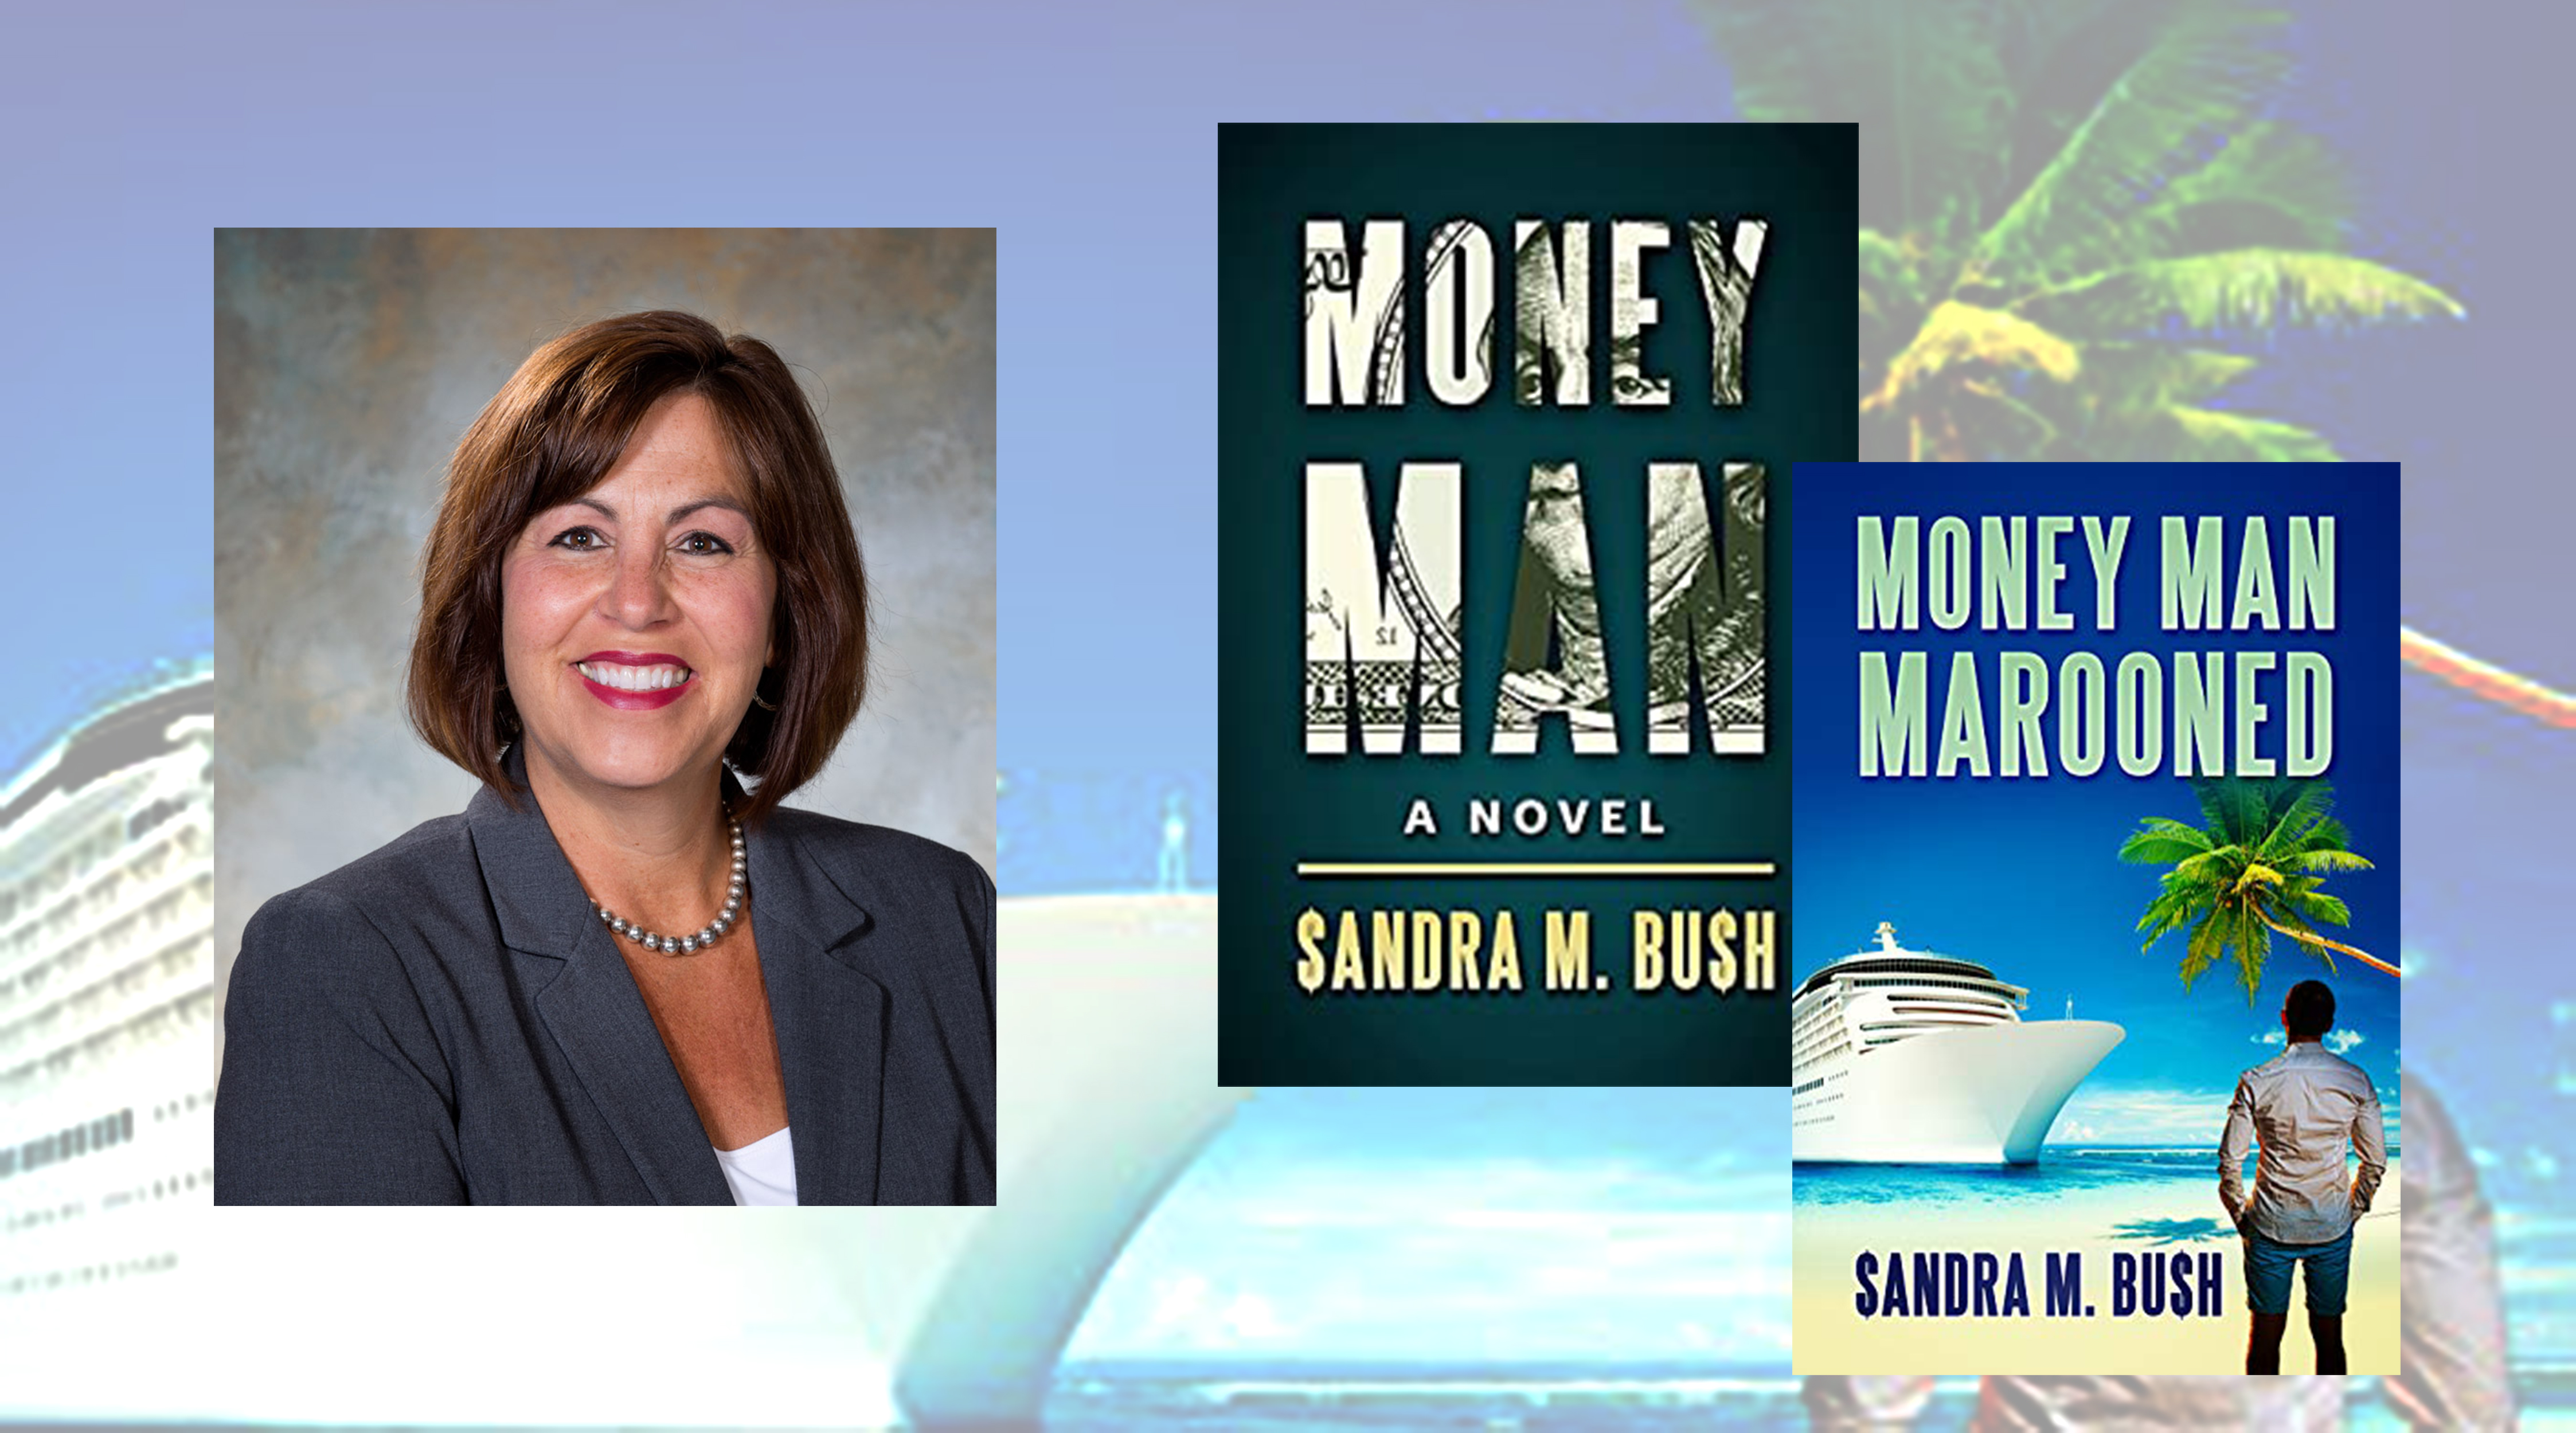 An Interview with Sandra M. Bush